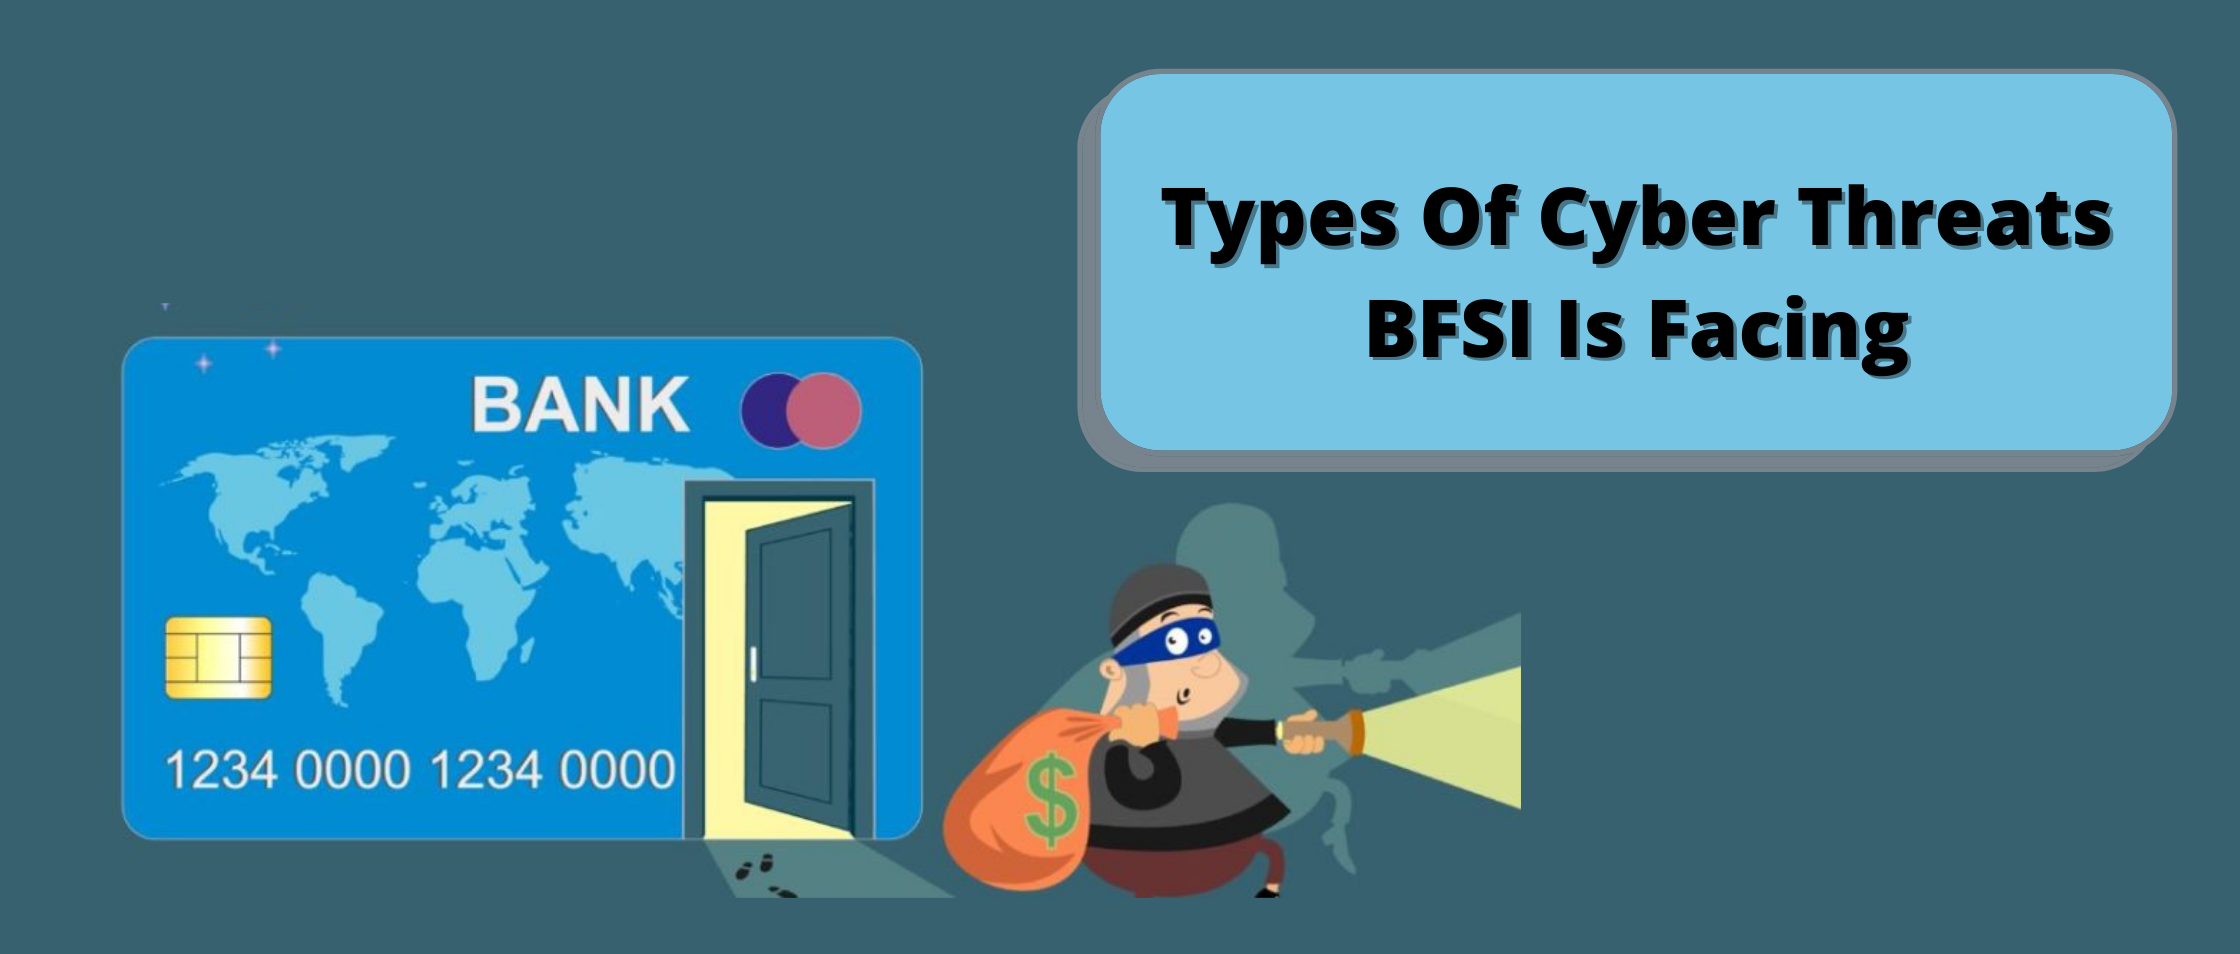 Types Of Cyber Threats BFSI Is Facing